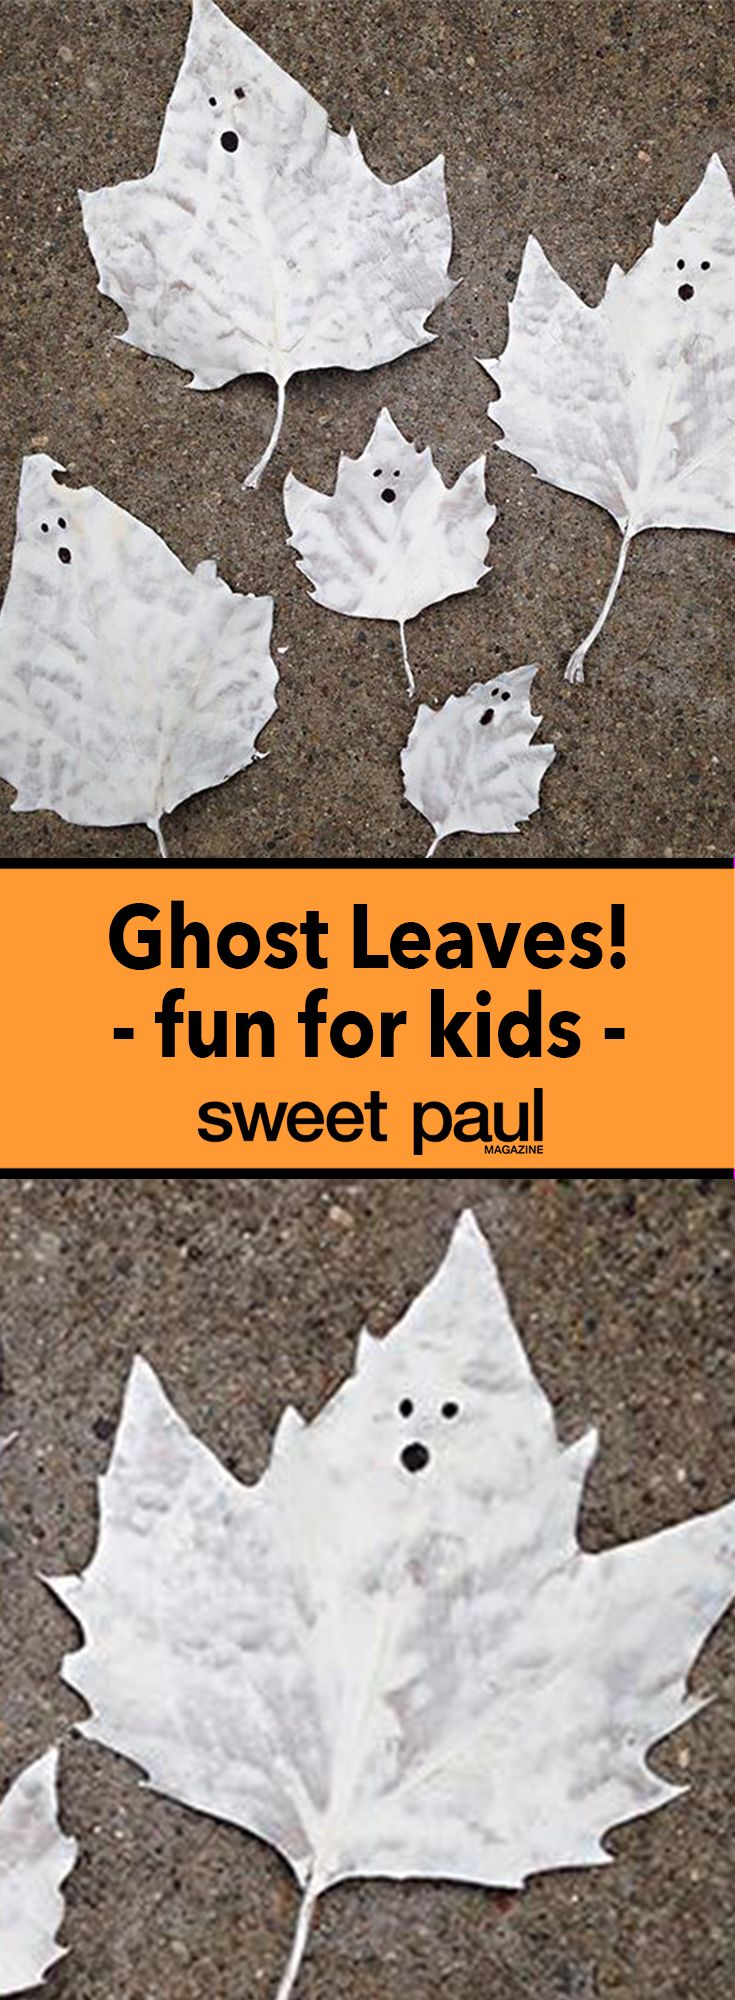 Ghost leaves for kids- fall crafting ideas